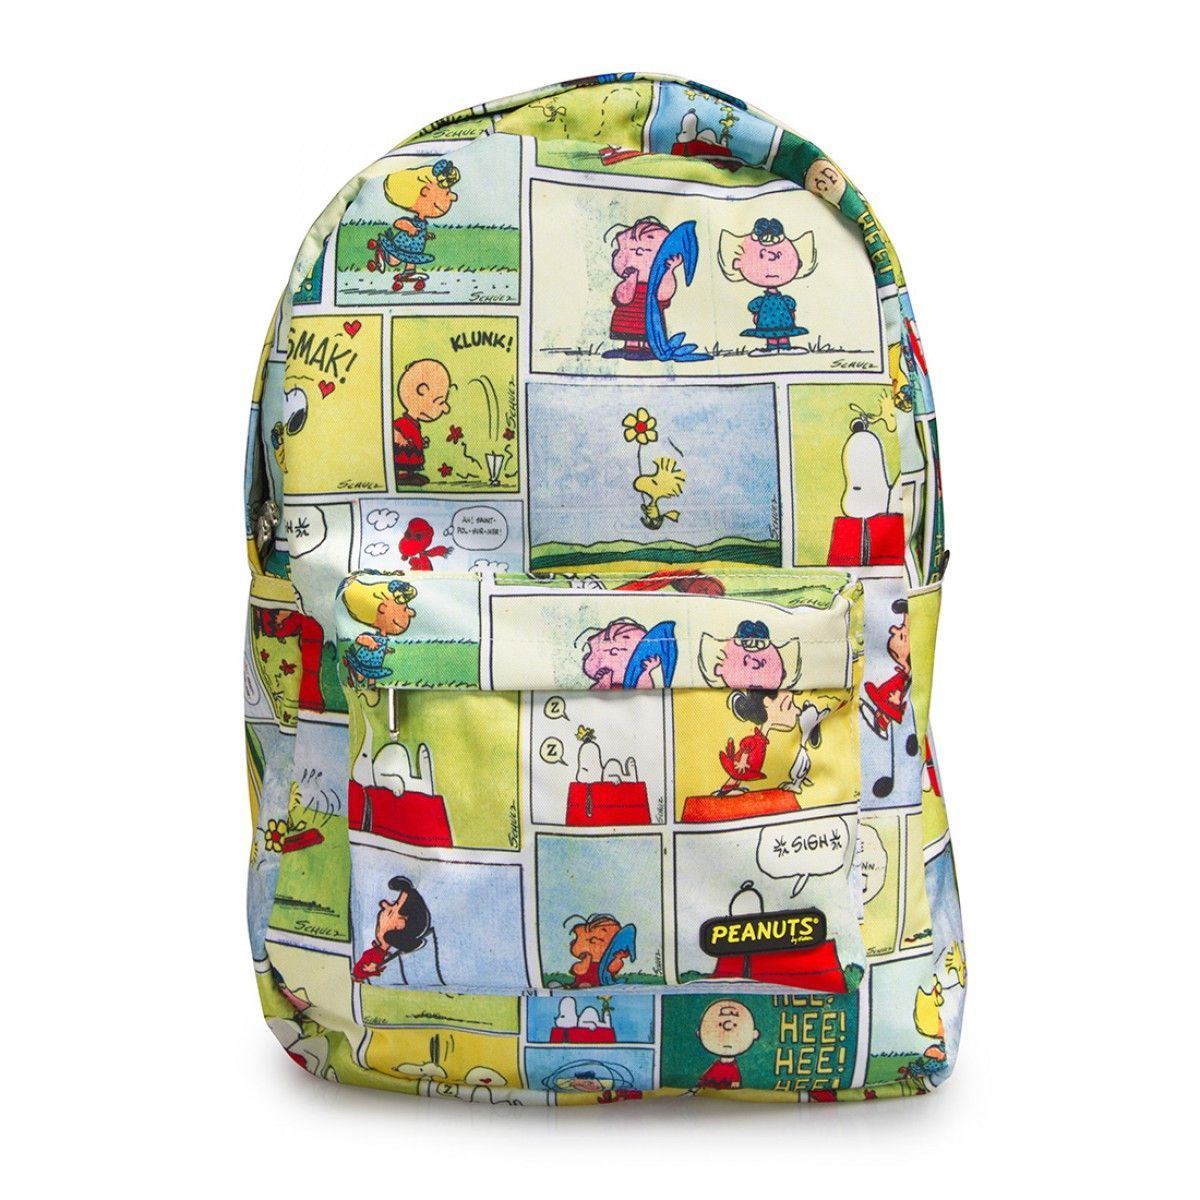 199553e0a Peanuts Comic Snoopy Woodstock Nylon Backpack by Loungefly ...